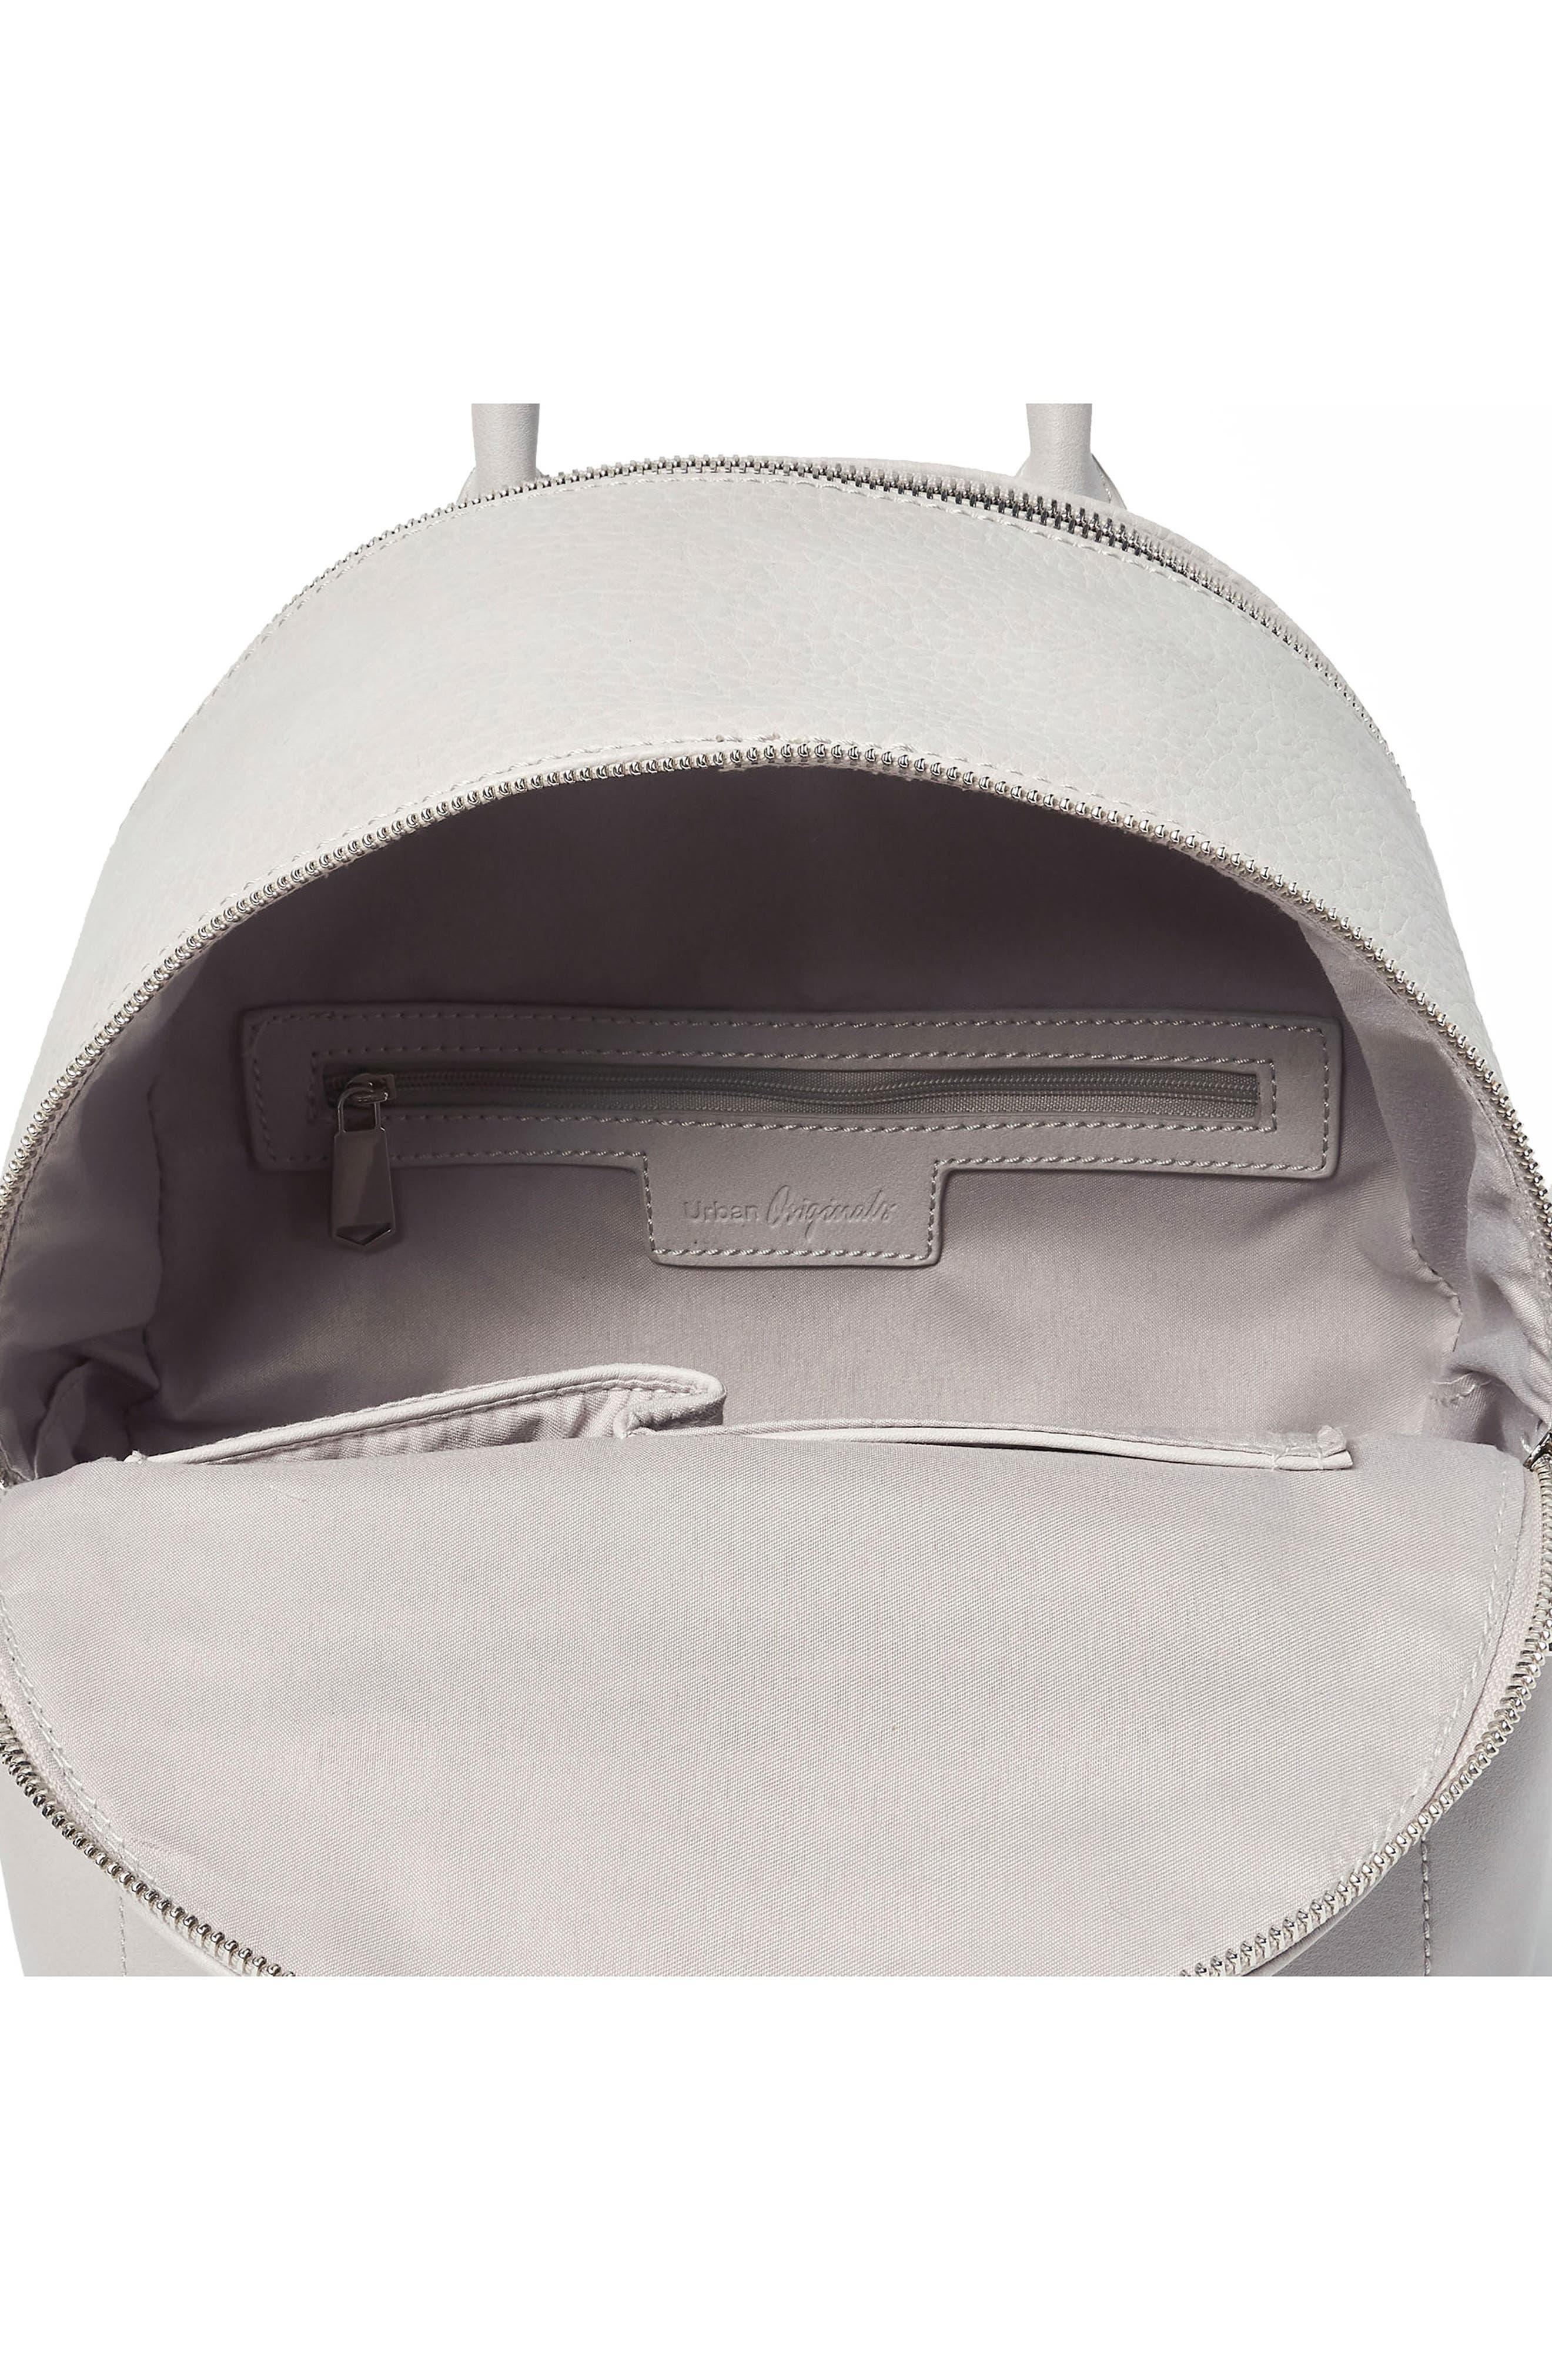 Into the Night Vegan Leather Backpack,                             Alternate thumbnail 8, color,